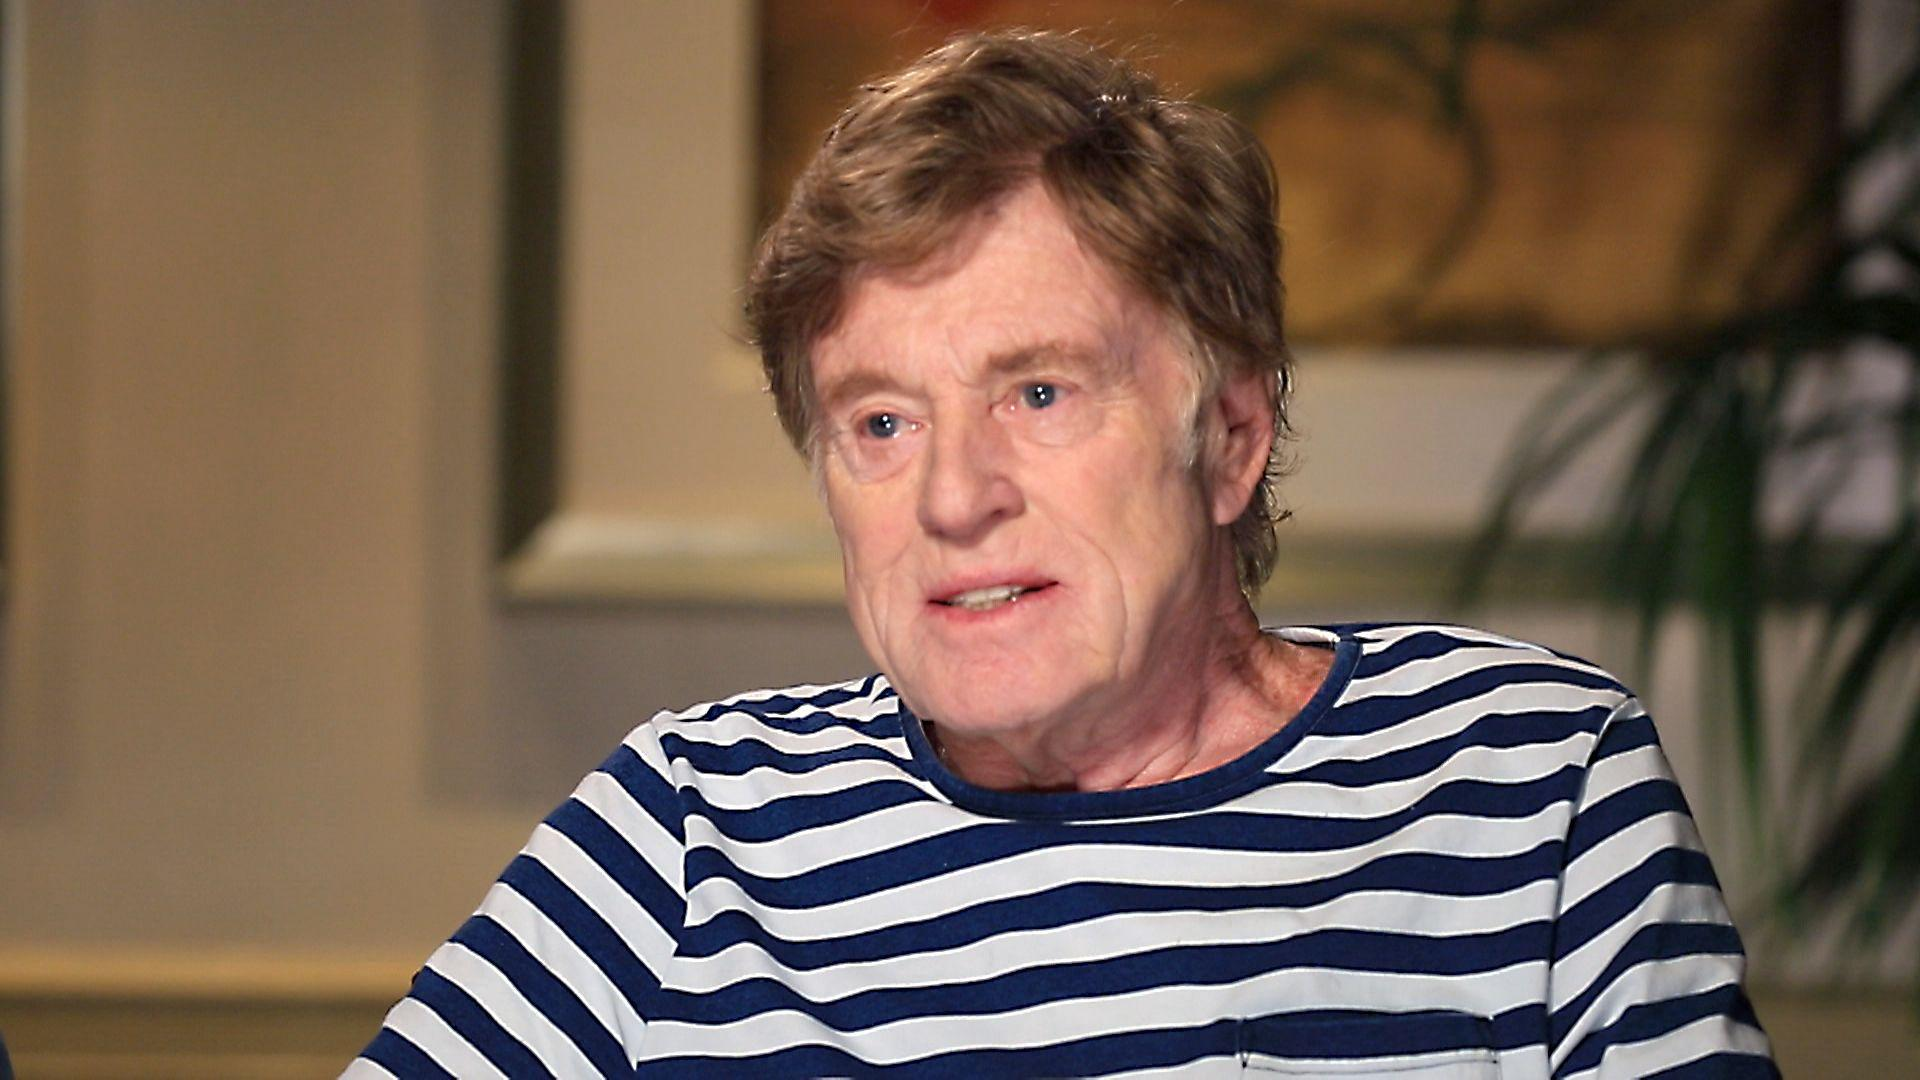 Robert Redford tells TODAY show why he won't watch his own movies